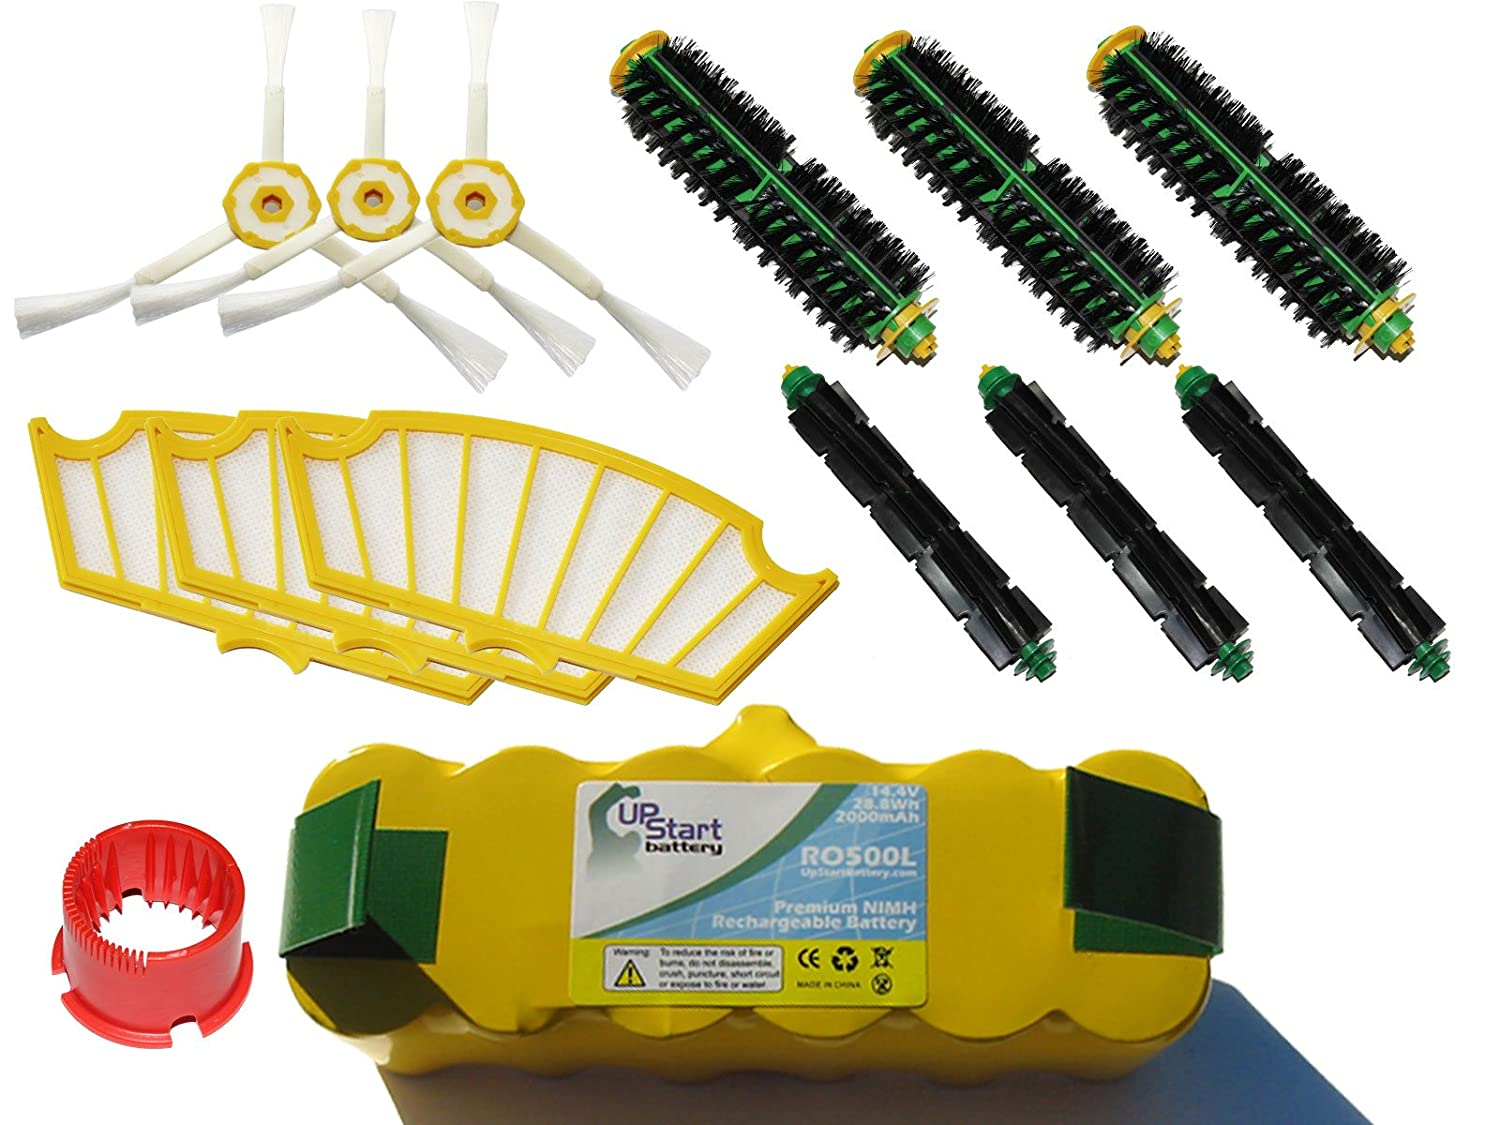 Replacement iRobot Roomba 551 Battery, Filter, Bristle Brush, Flexible Beater Brush, 3-Arm Side Brush and Brush Cleaning Tool - Kit Includes 1 Battery, 3 Filter, 3 Bristle Brush, 3 Flexible Beater Brush, 3 3-Arm Side Brush and 1 Brush Cleaning Tool 3 pack 3 armed side brush replace for irobot roomba vacuum 800 series 880 870 900 series 980 vacuum cleaning accessory kit